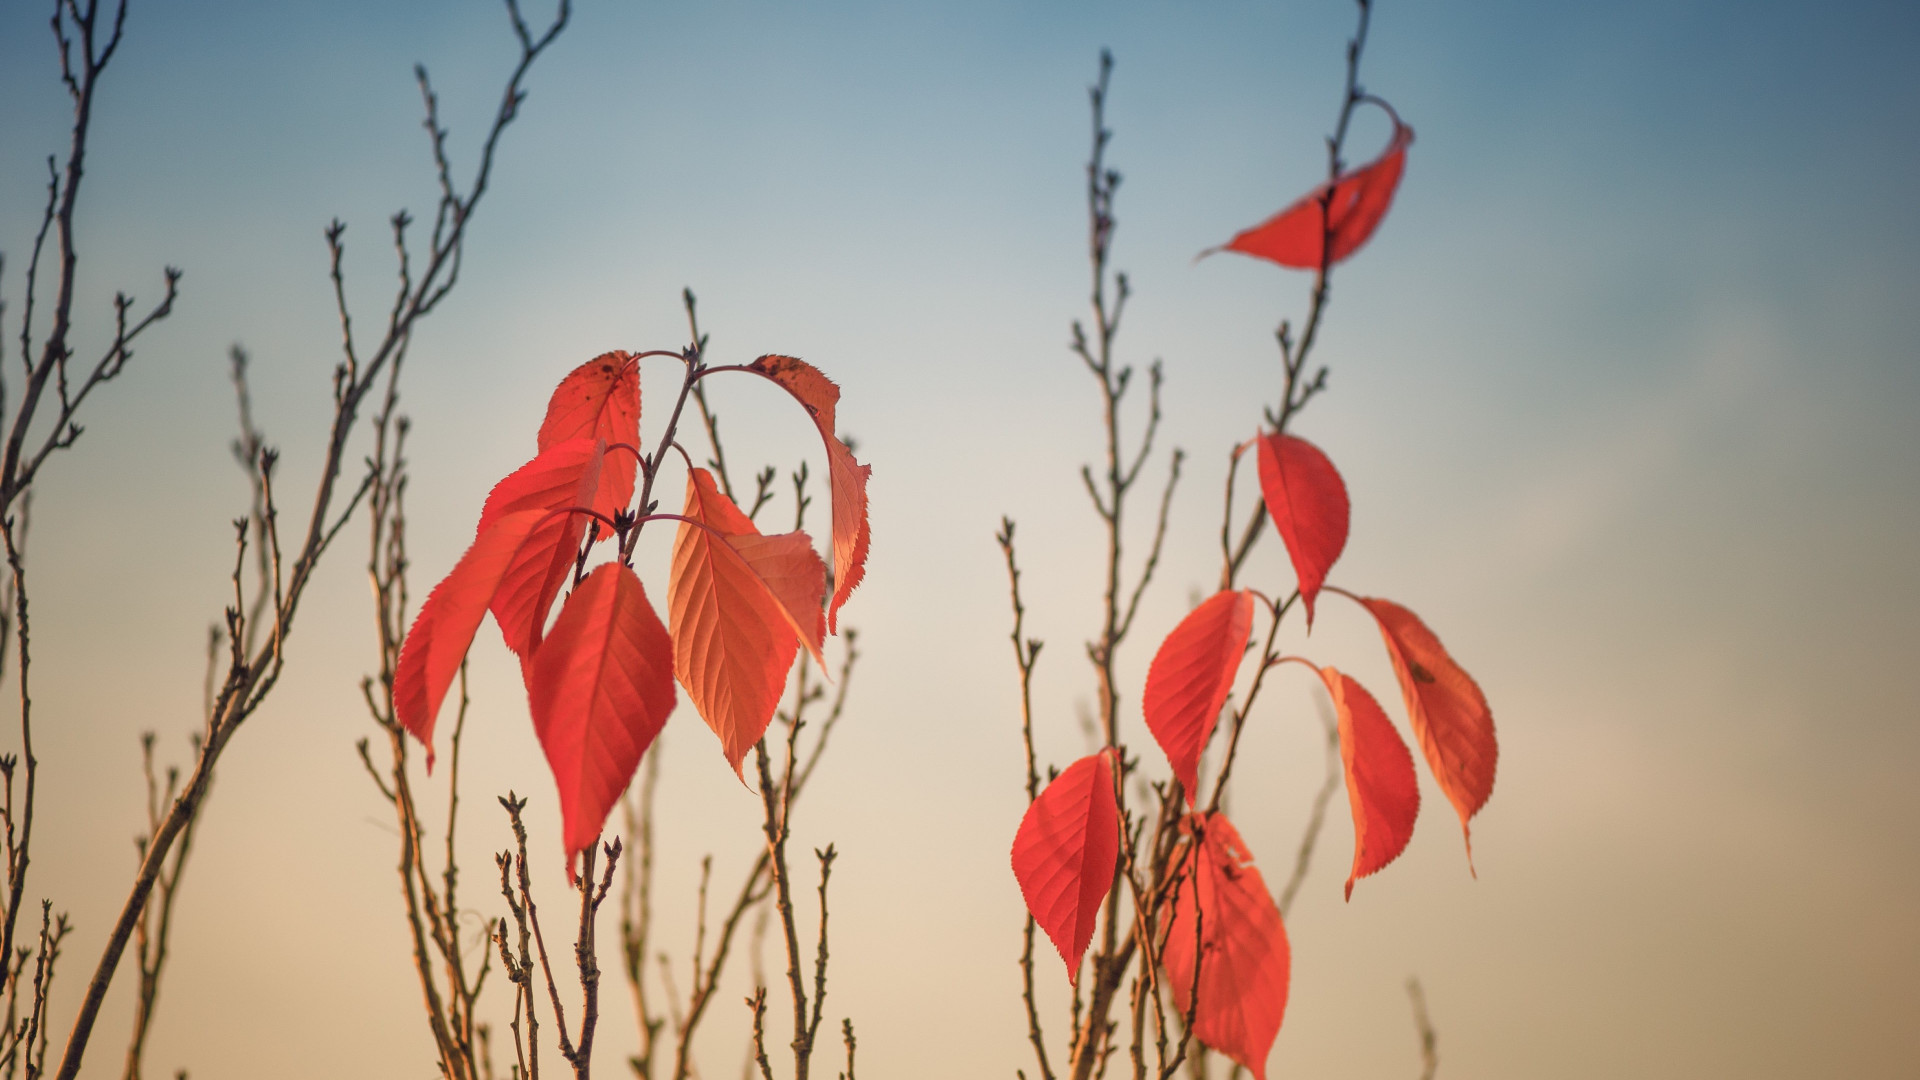 Autumn leaves on tree branches | 1920x1080 wallpaper